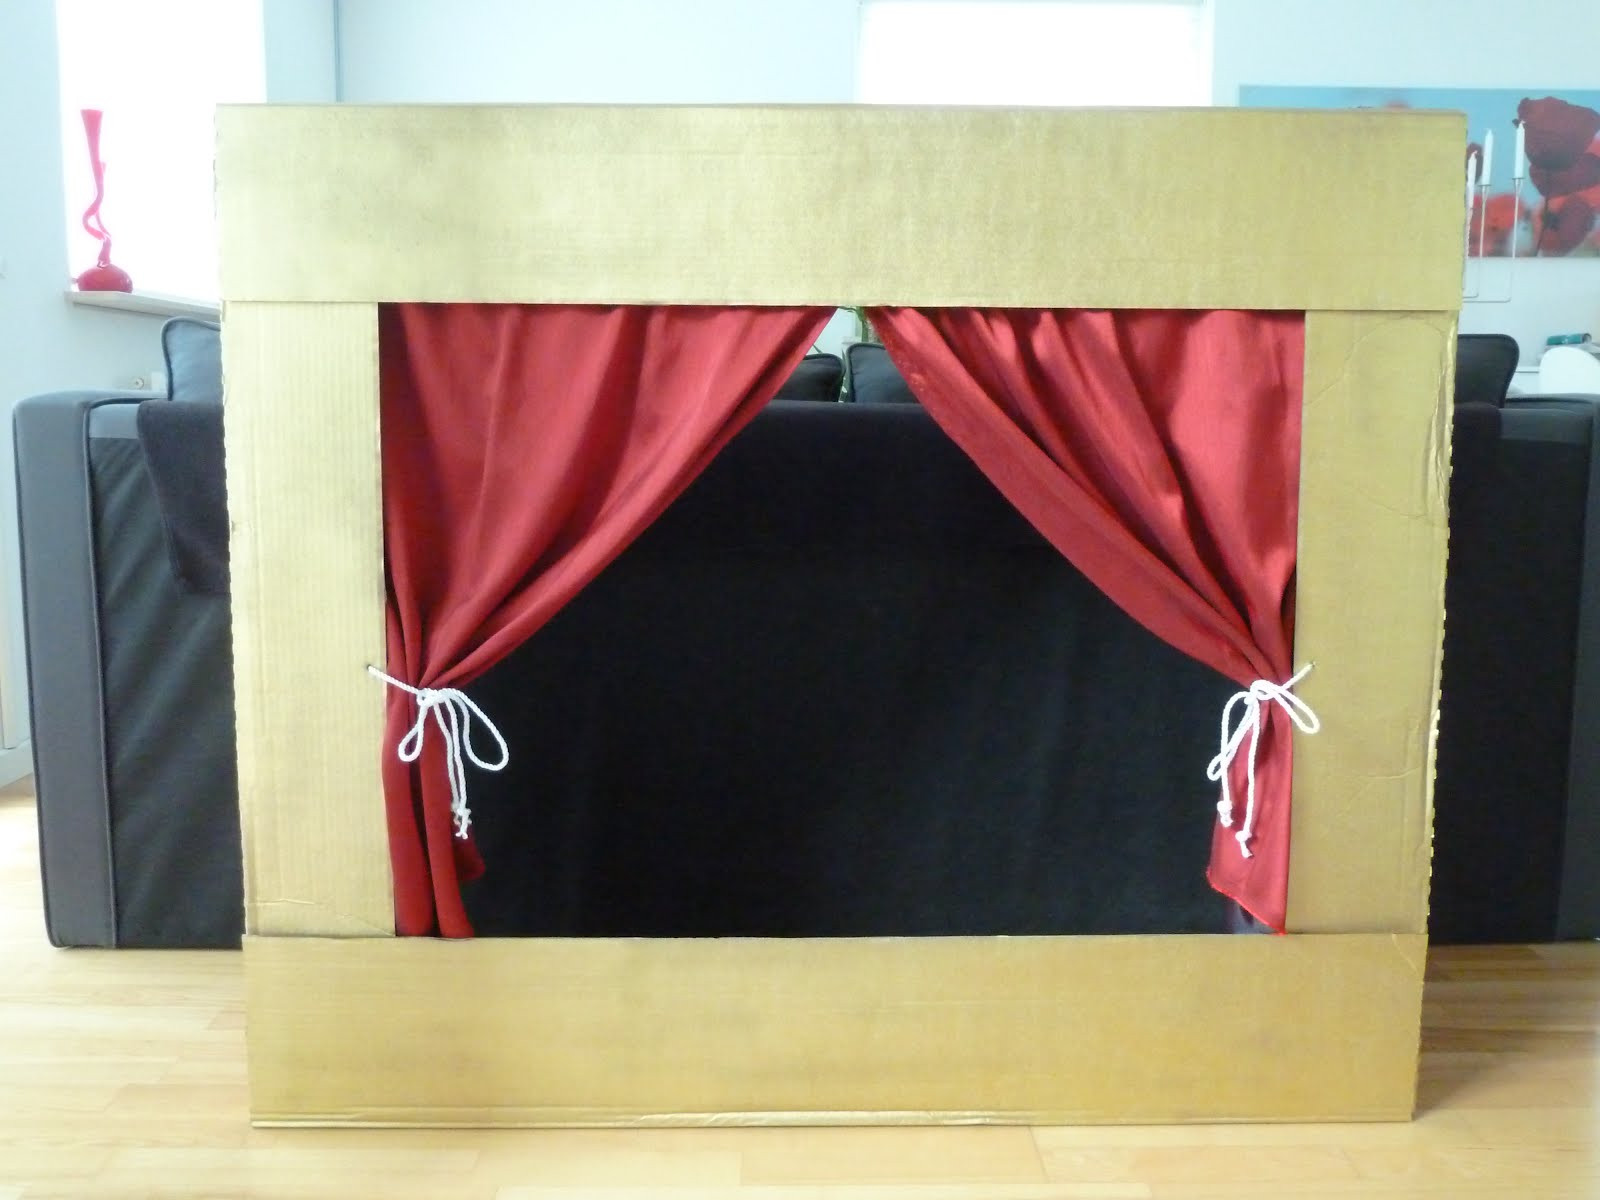 Best ideas about DIY Puppet Theater . Save or Pin Family FECS DIY Floor or Table Top Children s Puppet Now.